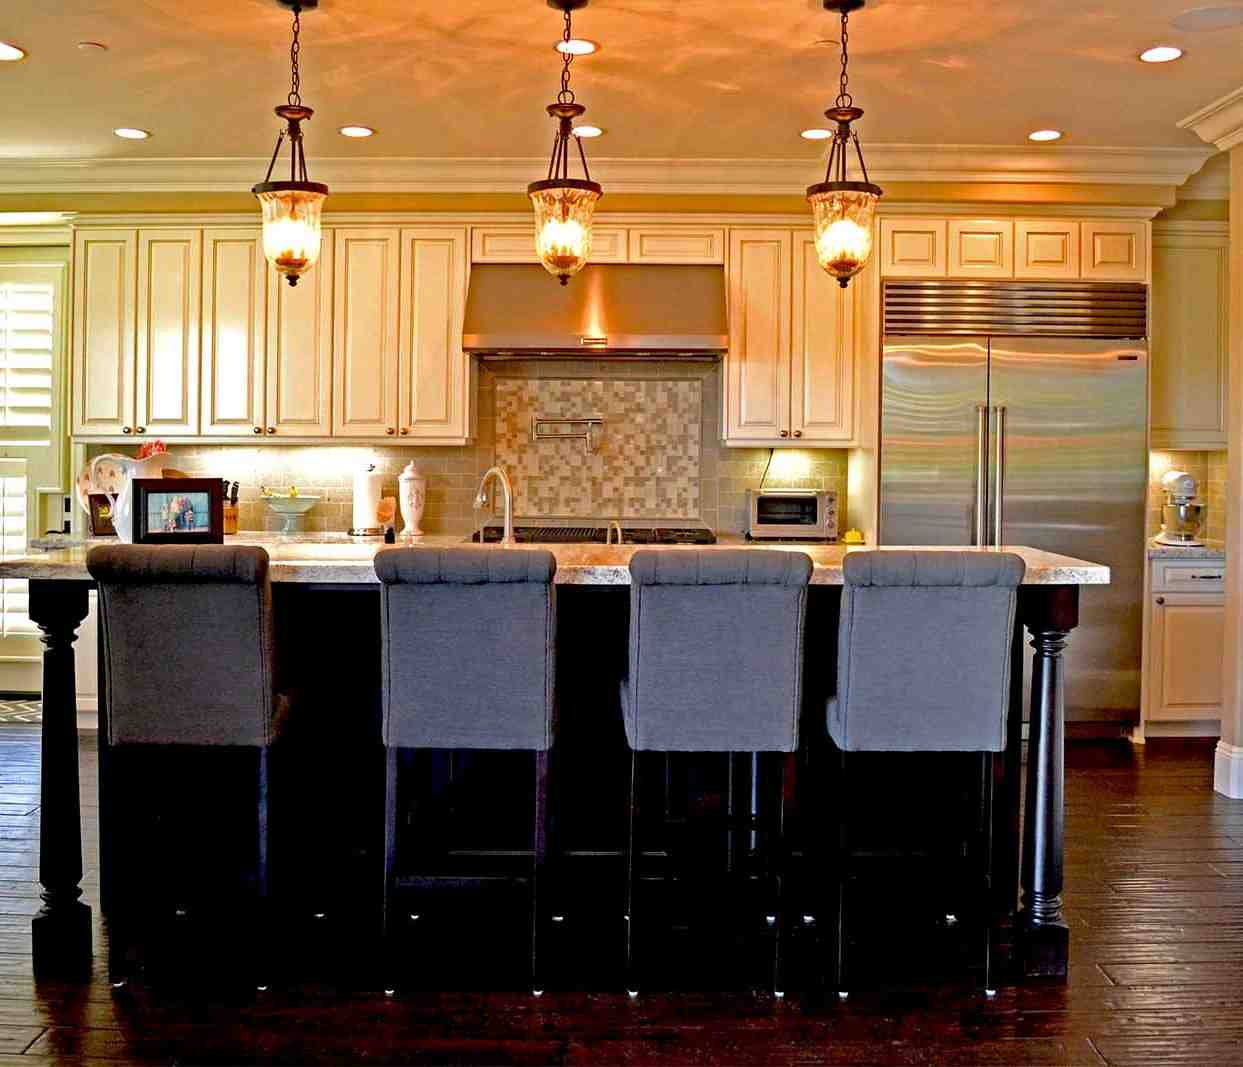 Rta kitchen cabinets made in usa home furniture design for Kitchen cabinets usa